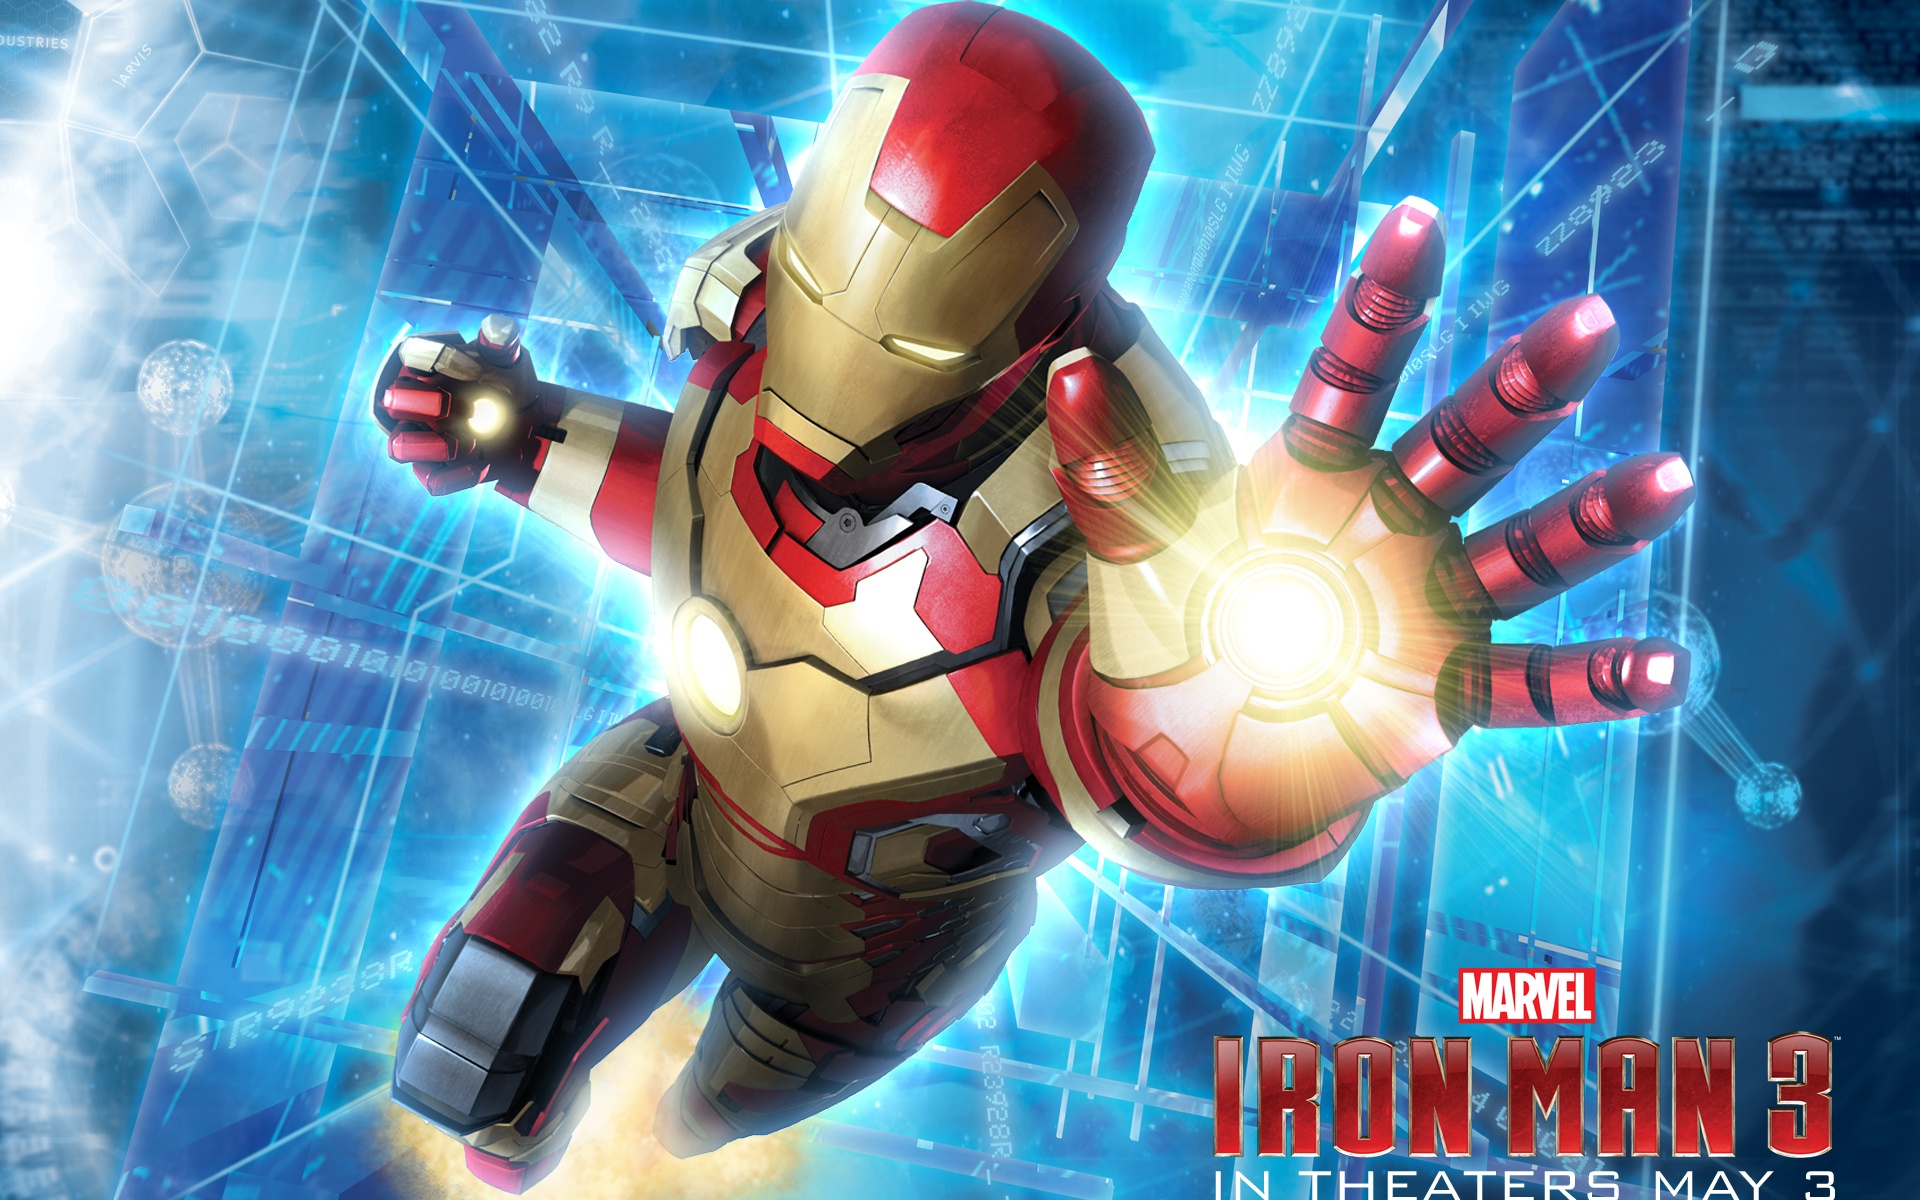 Wallpaper Marvel Movie Iron Man 3 1920x1200 Hd Picture Image